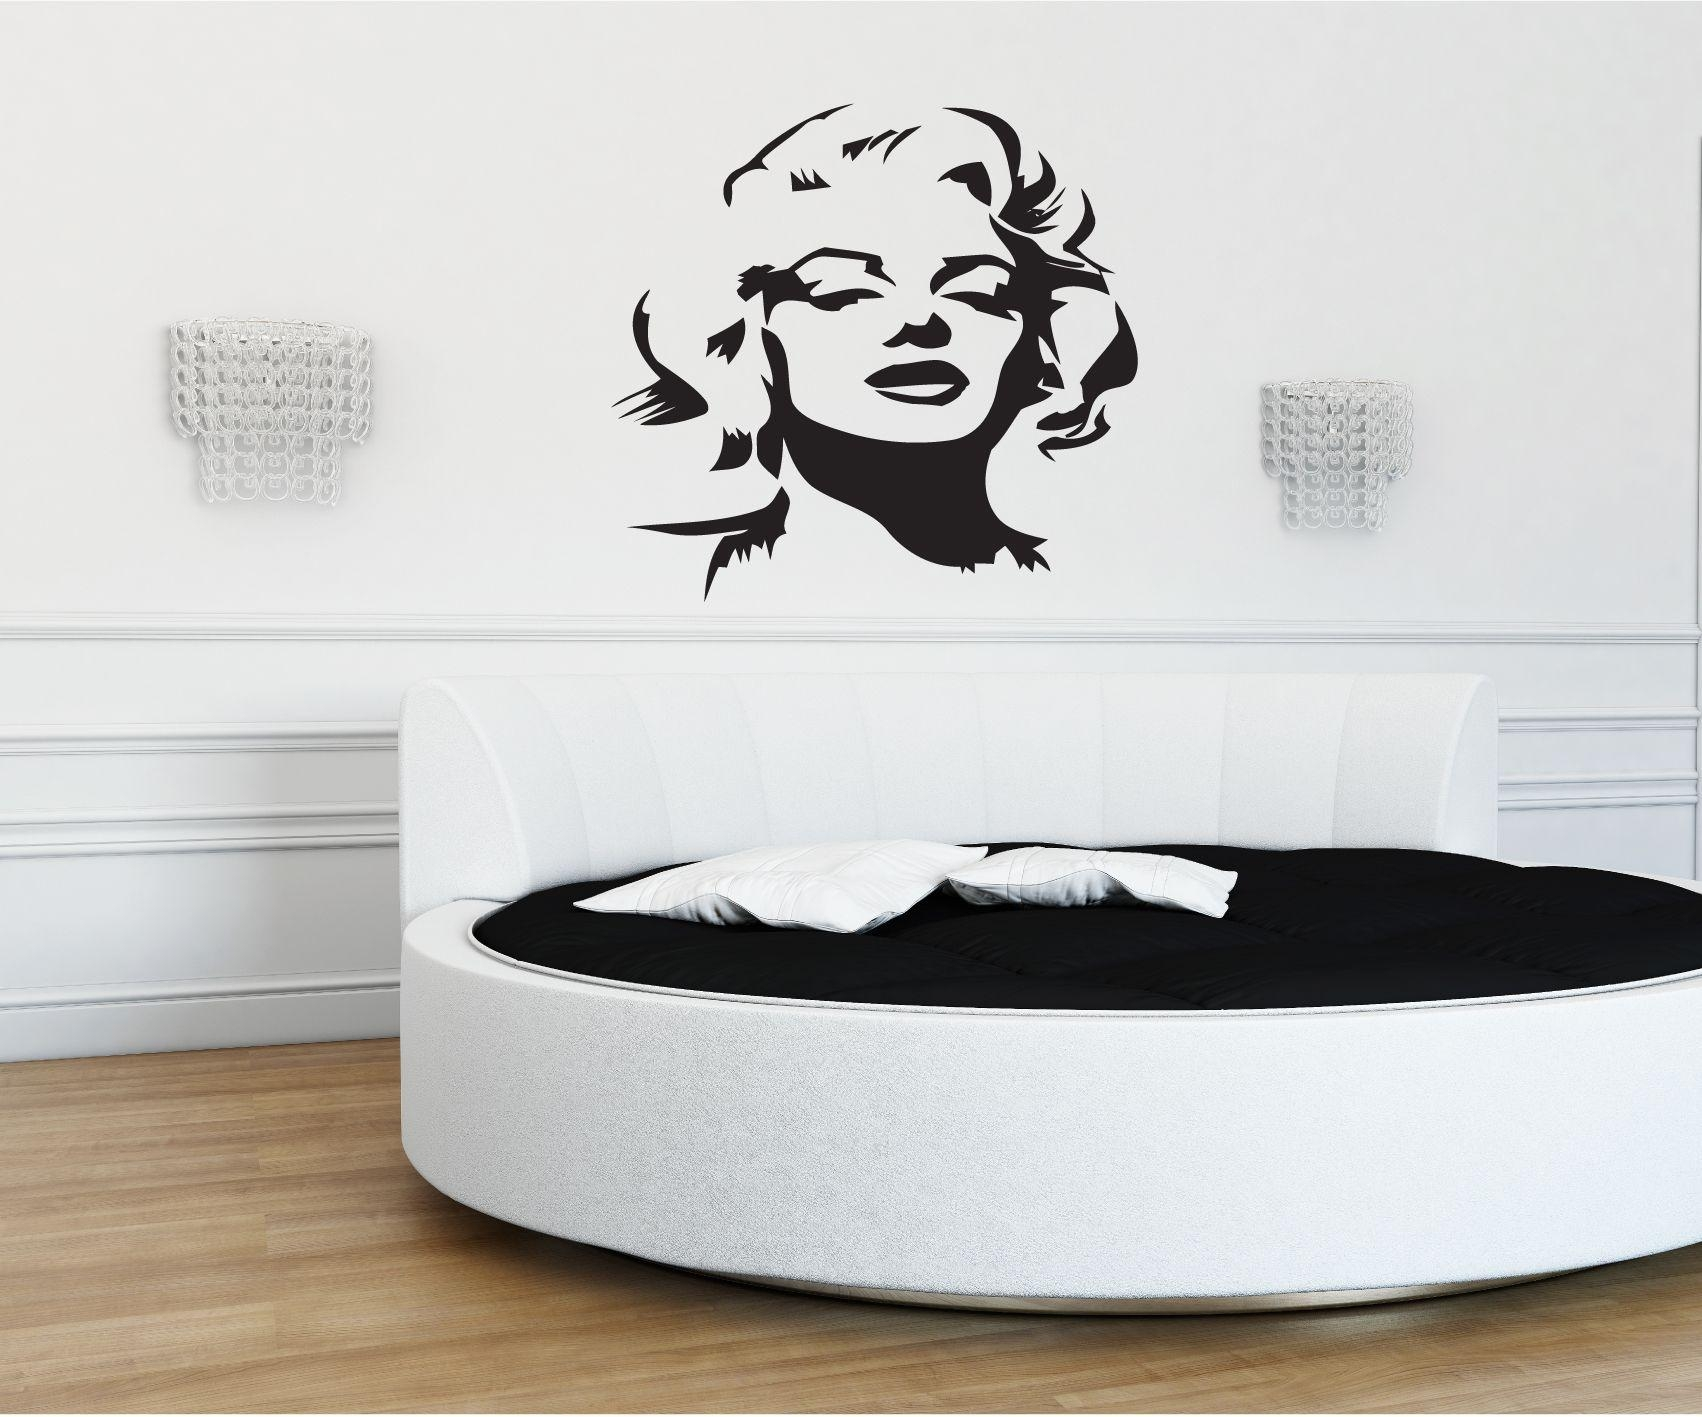 36 Marilyn Monroe Wall Decal, Large Wall Decals Large Marilyn for Marilyn Monroe Wall Art